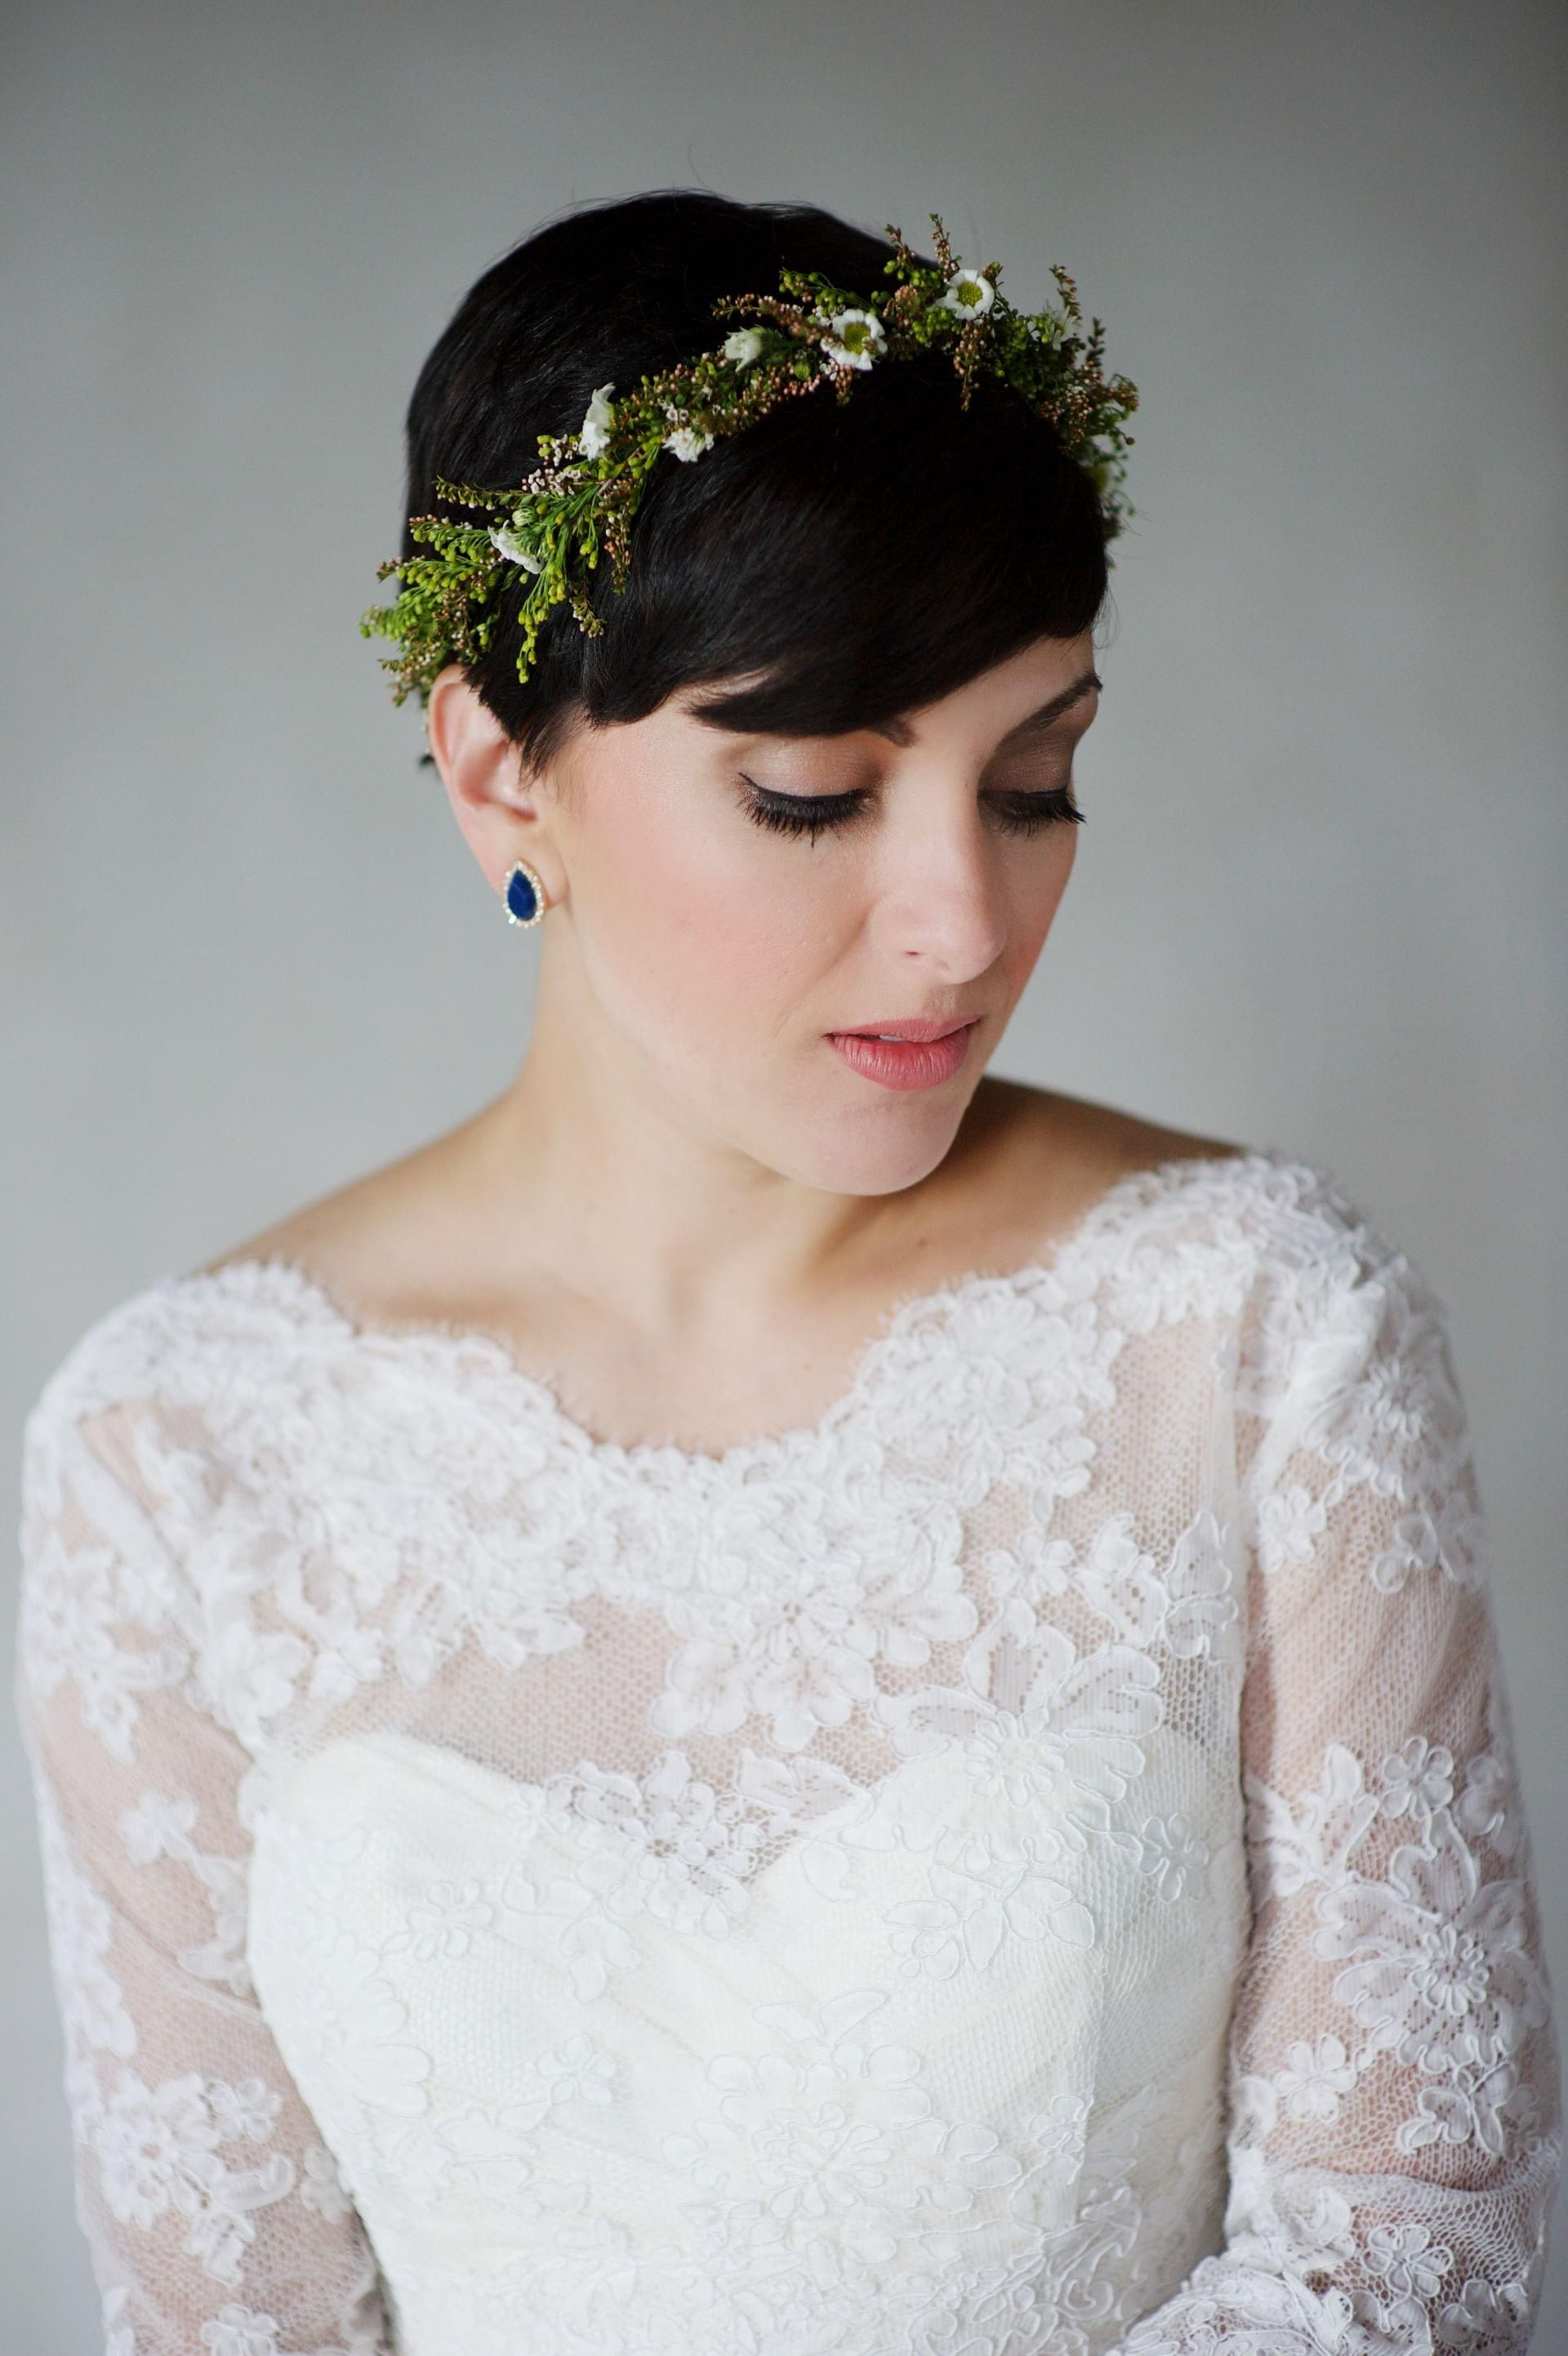 pixie cut, short bridal hairstyle, natural green flower crown